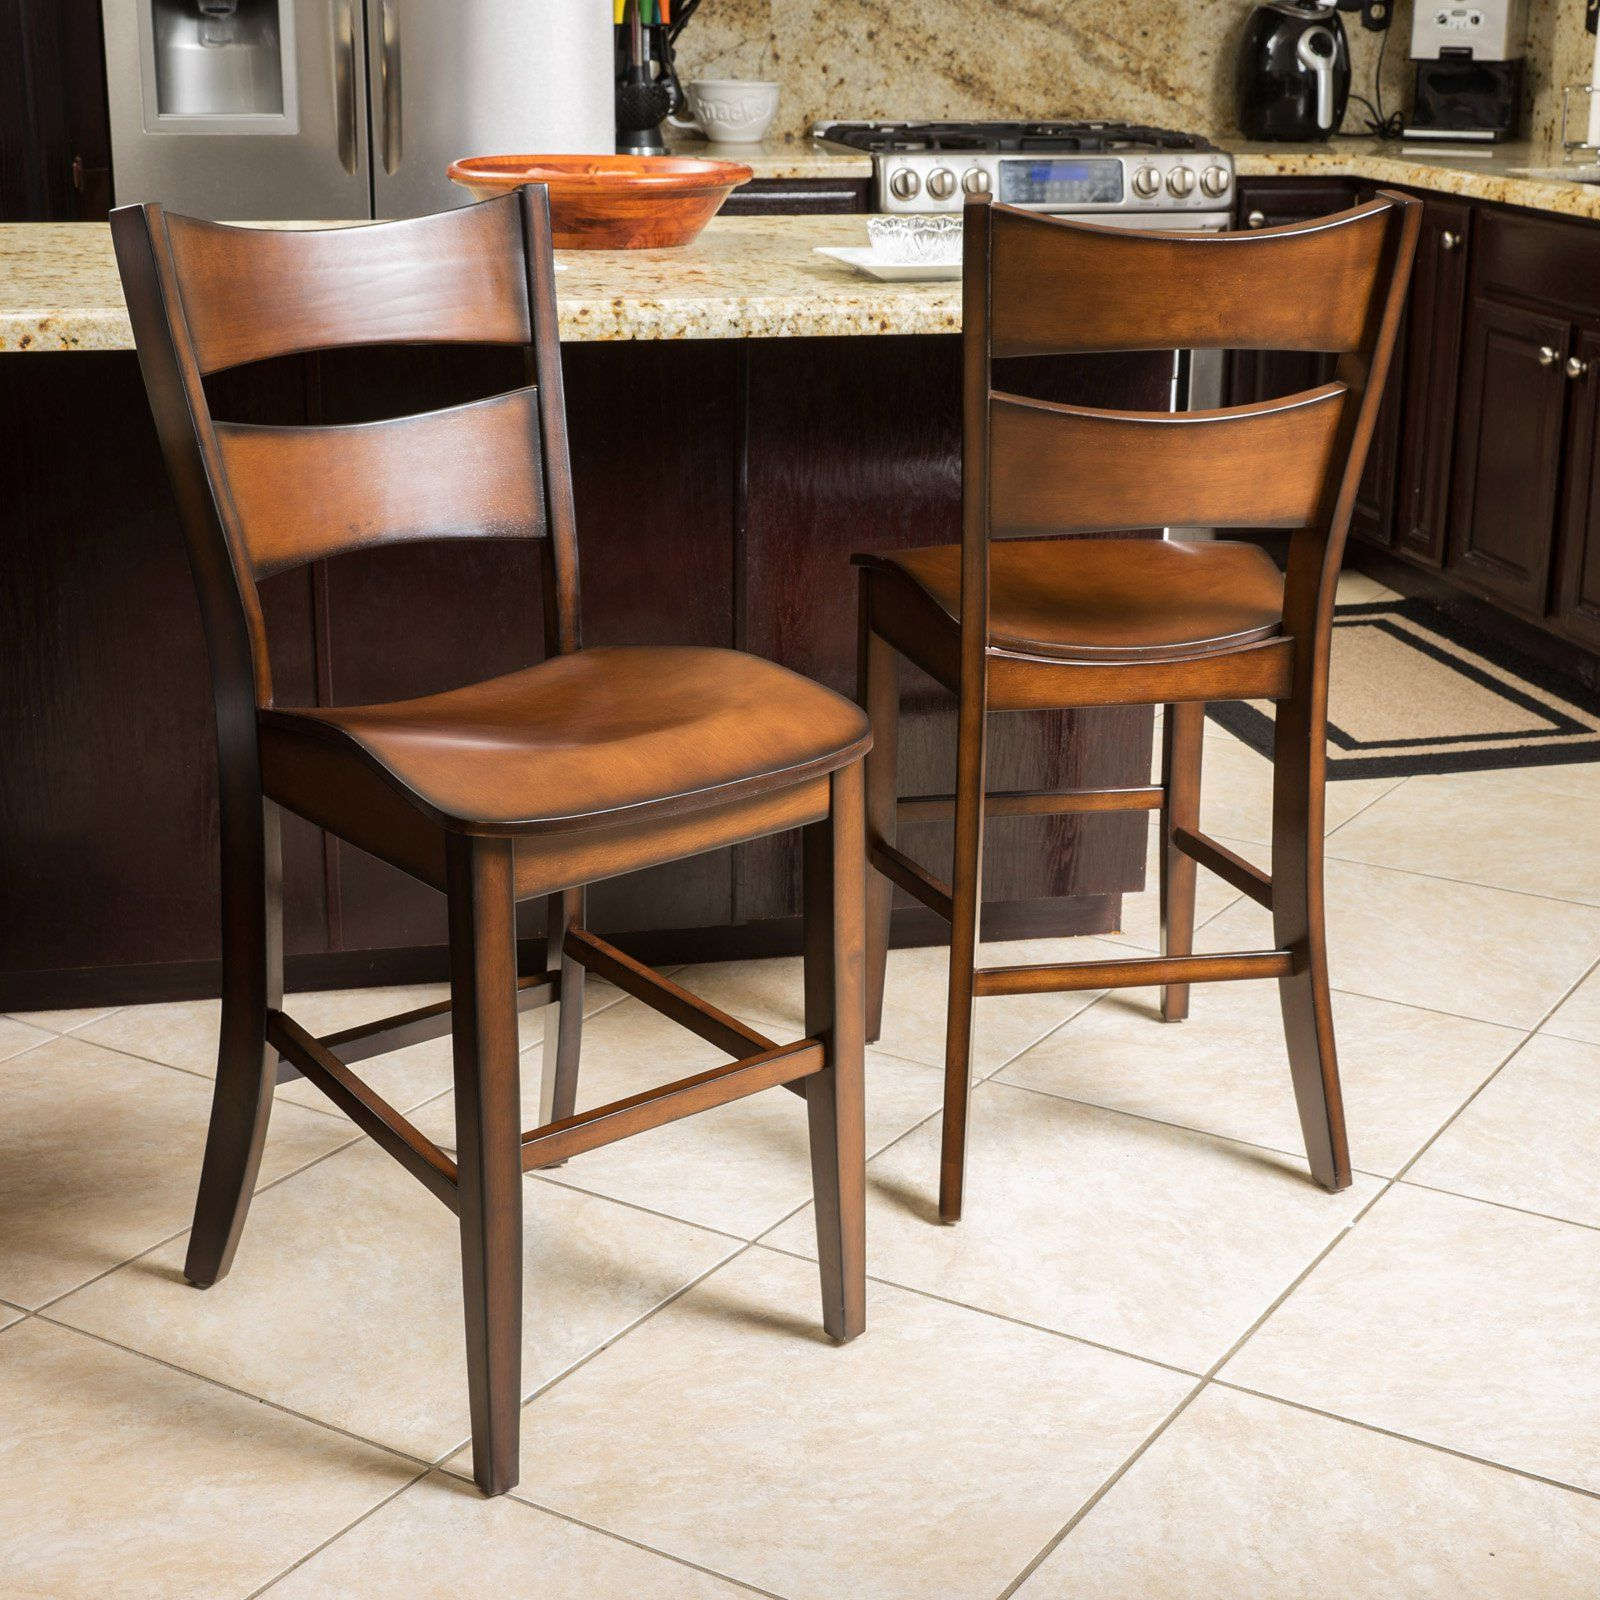 Home Wood counter stools, Counter stools, Wood counter